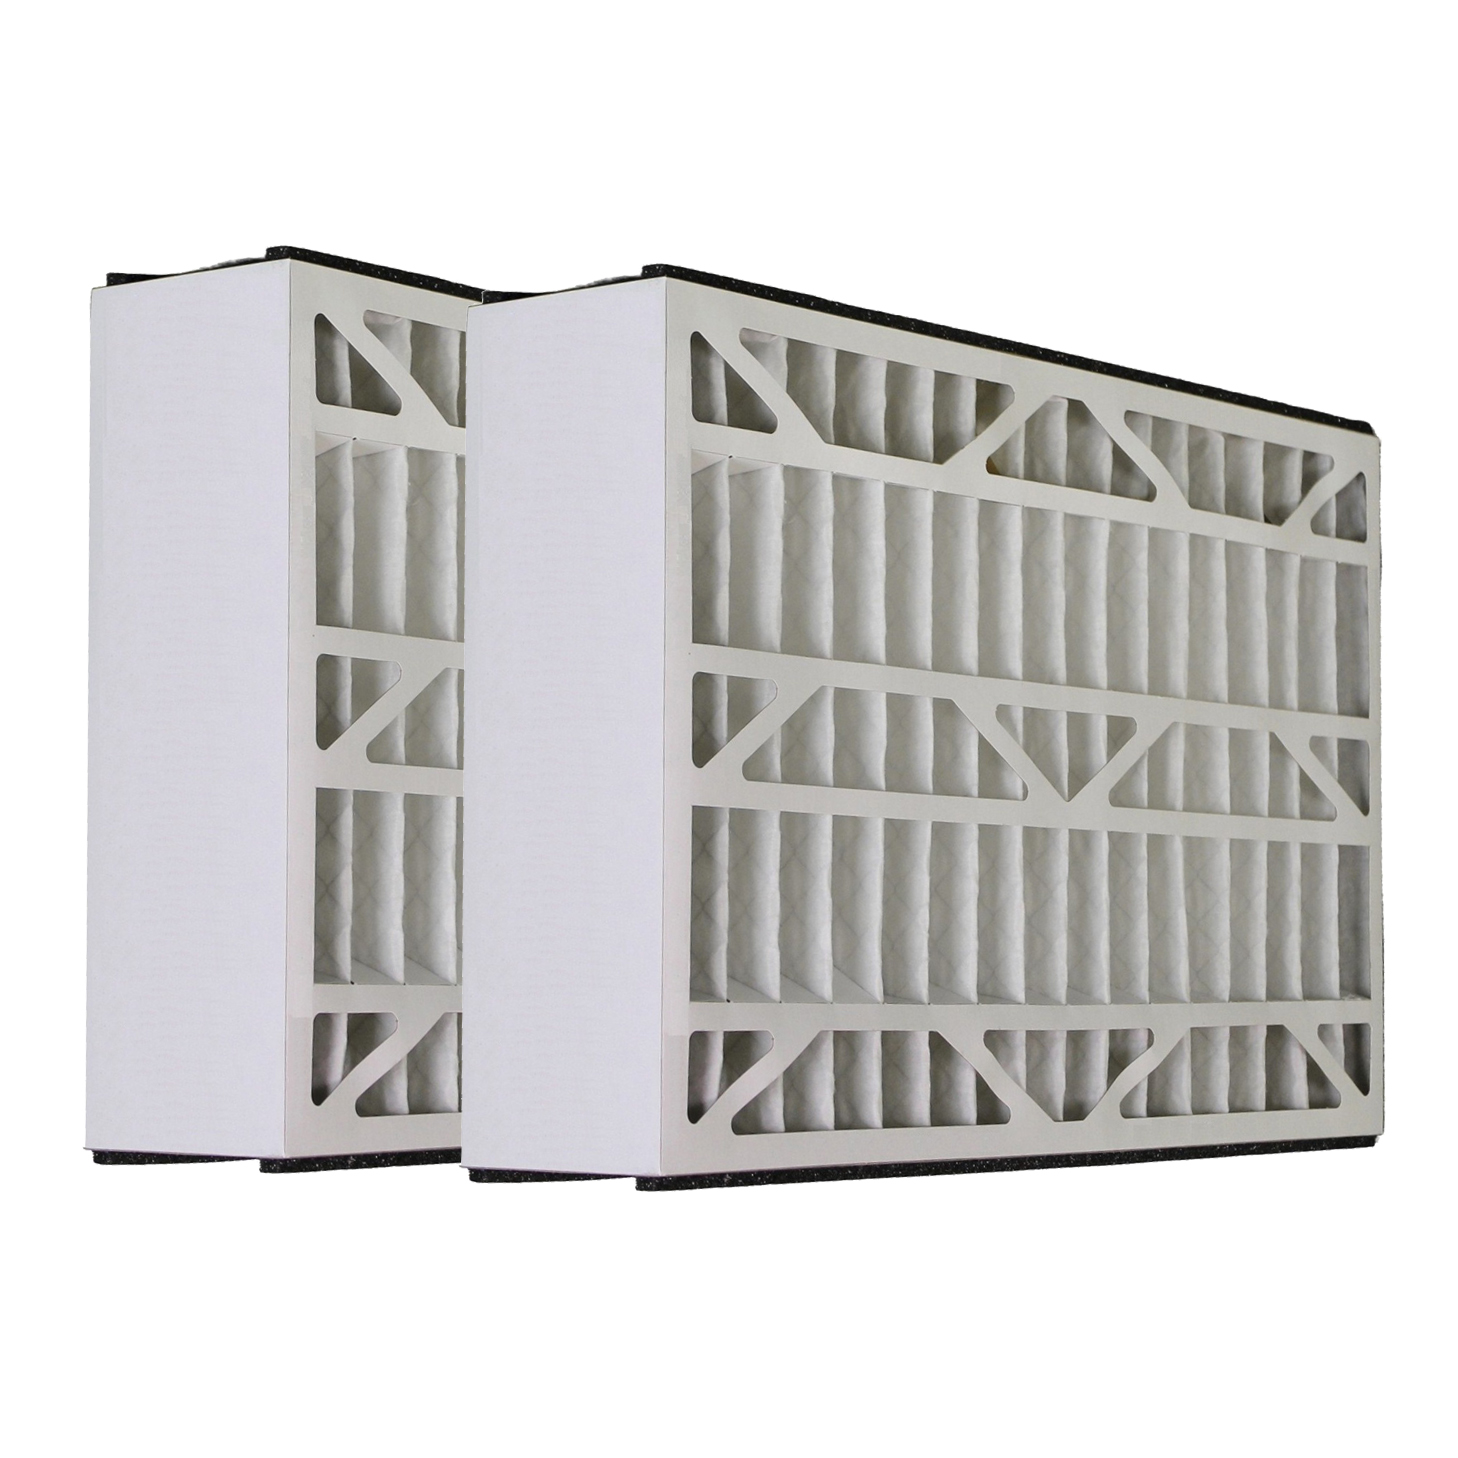 Tier1 Replacement for Skuttle 16x25x5 Merv 11 AC Furnace Air Filter 2 Pack